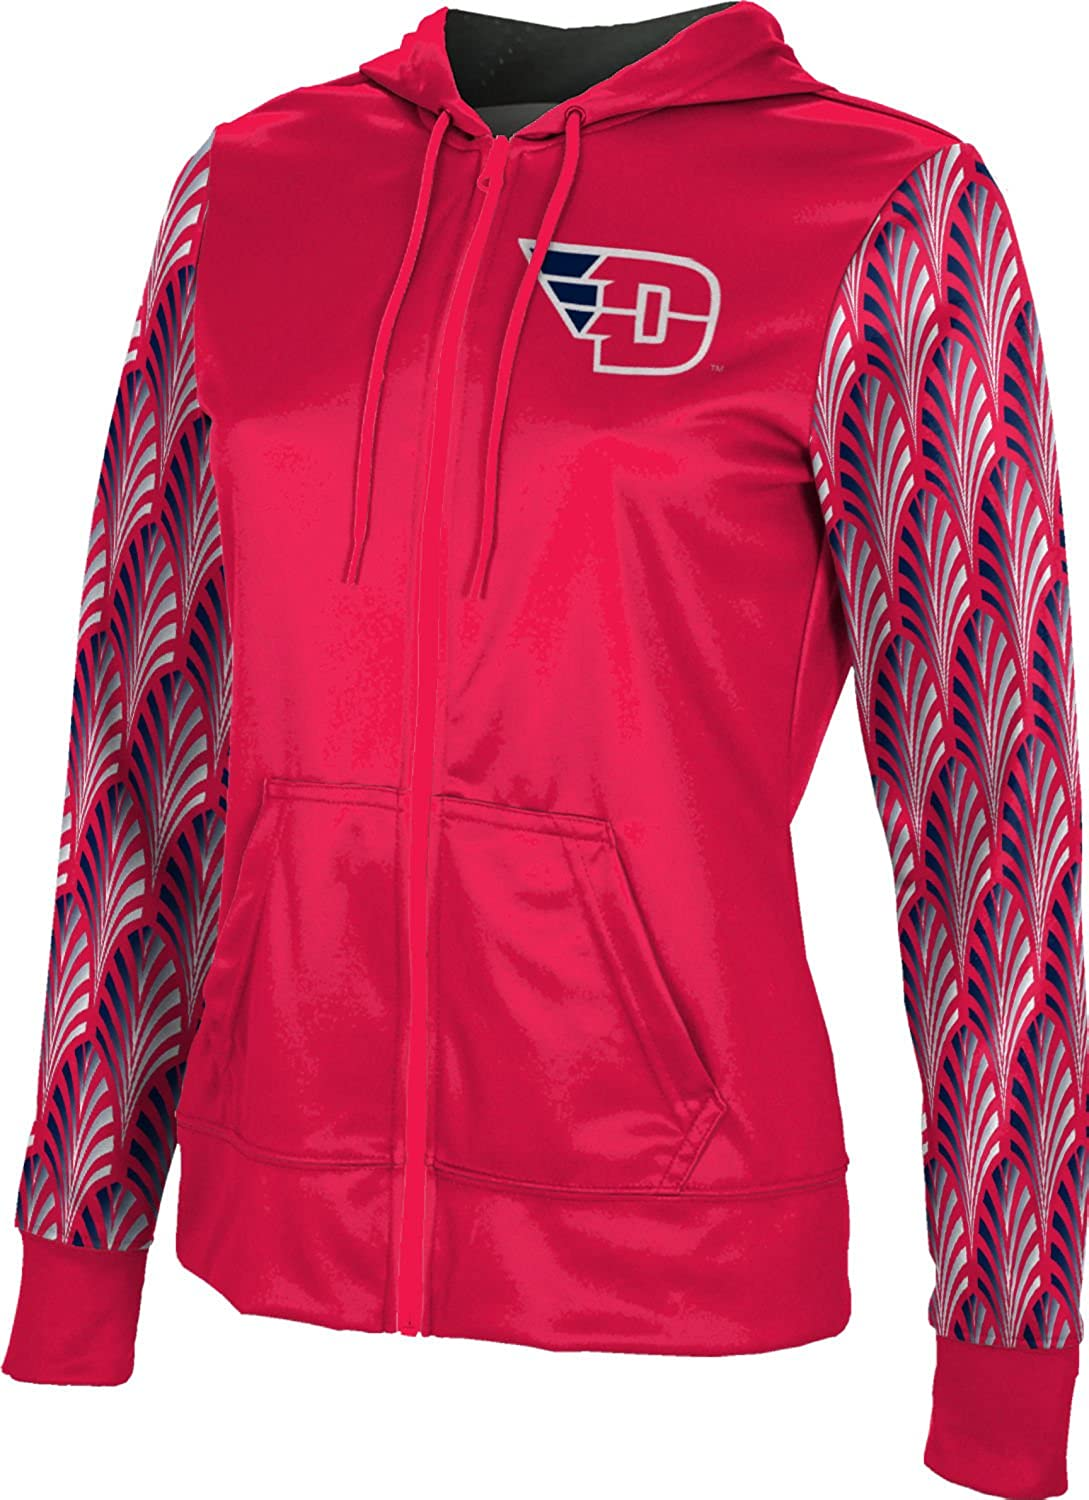 ProSphere University of Dayton Girls Zipper Hoodie School Spirit Sweatshirt Deco